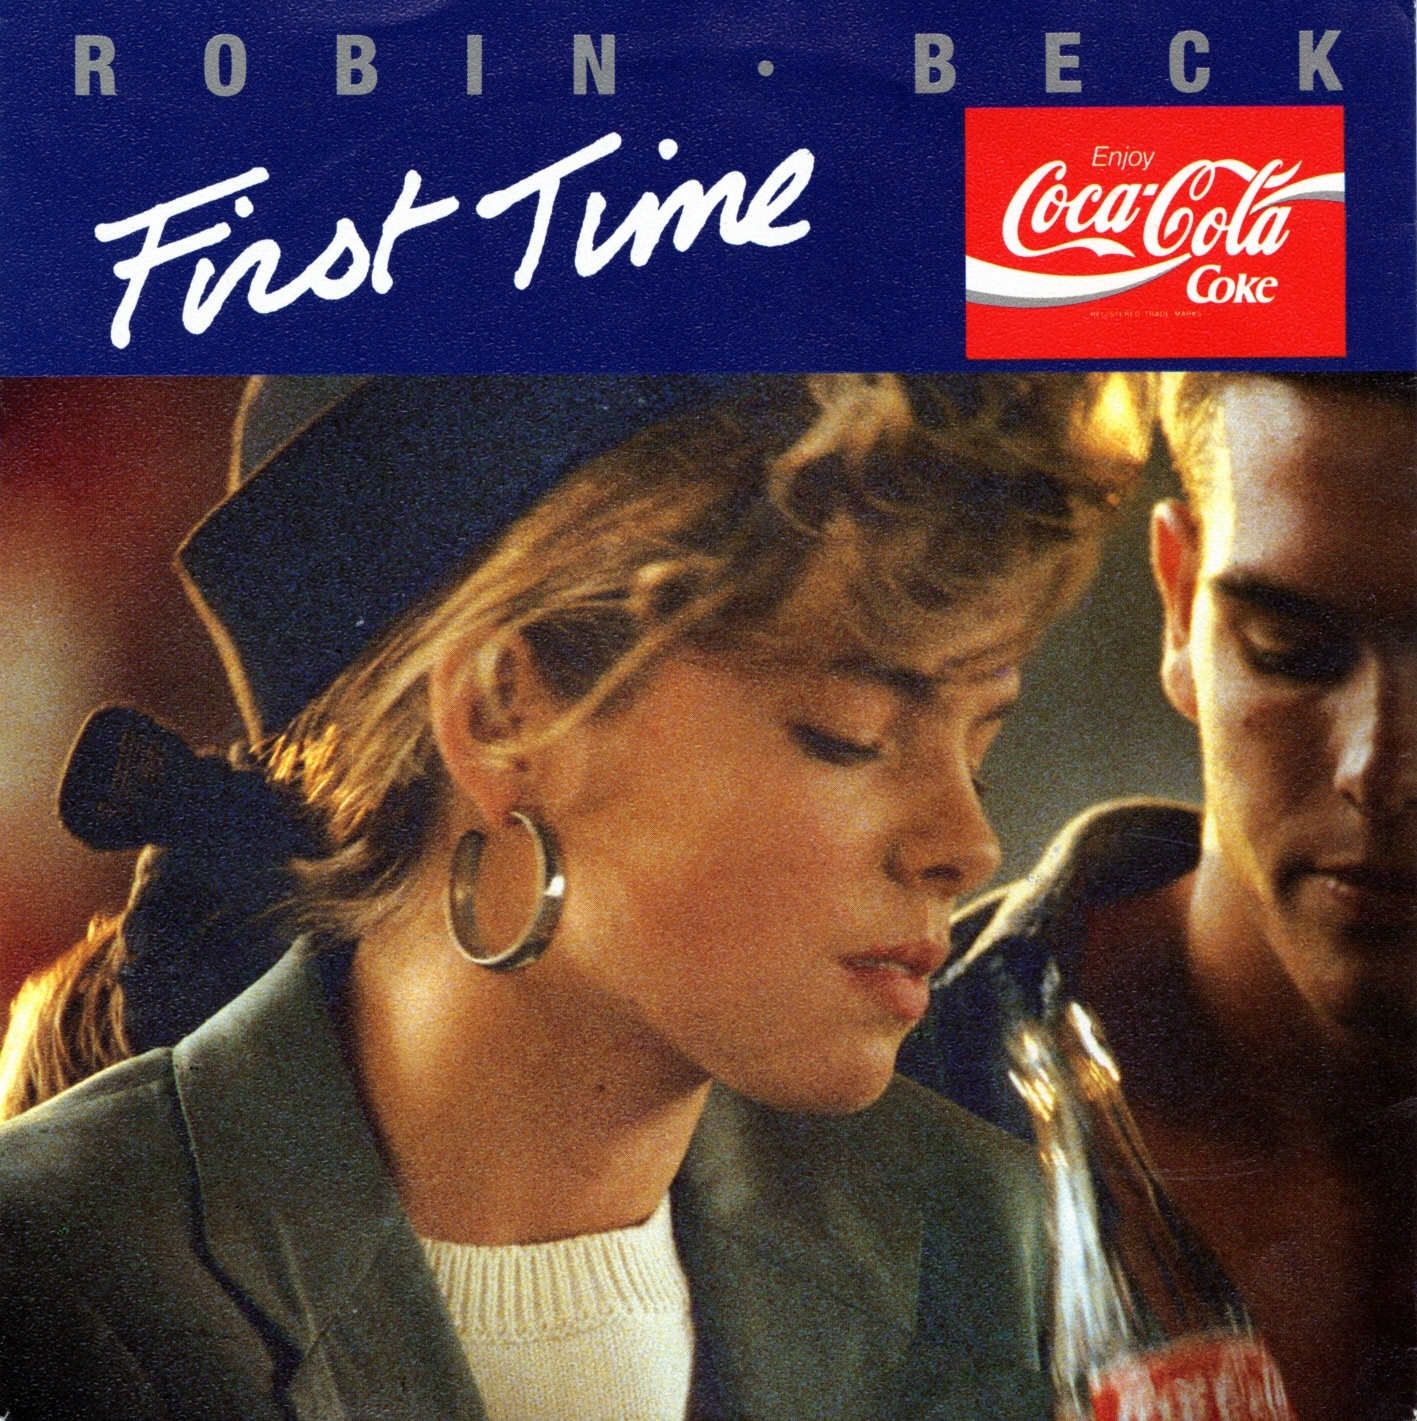 The first time (Foto: Robin Beck)